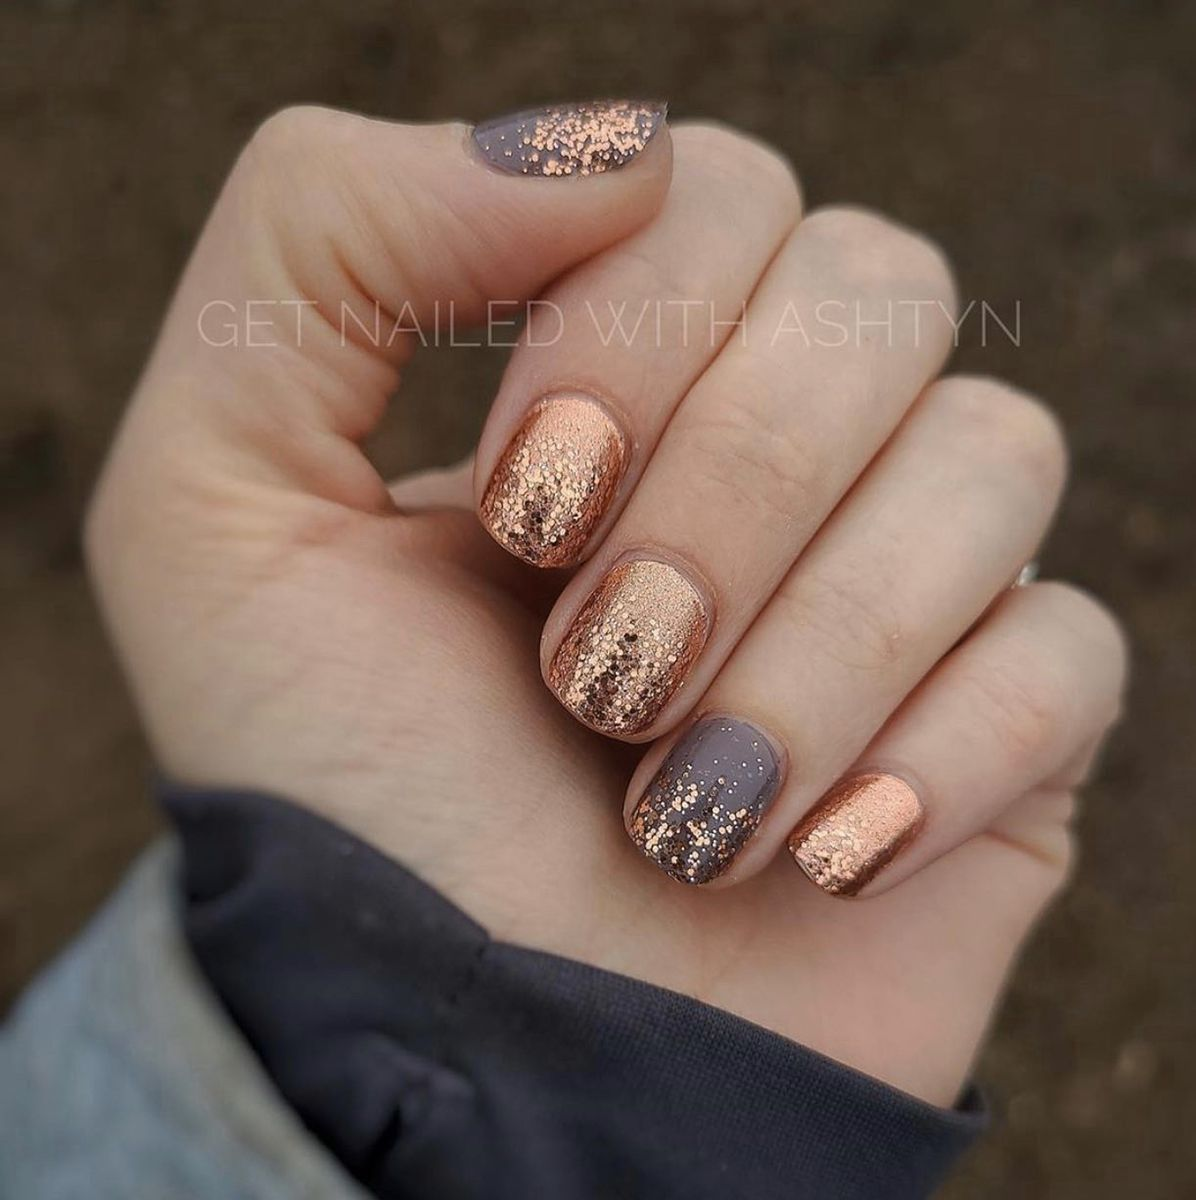 Loving this Copper Look!